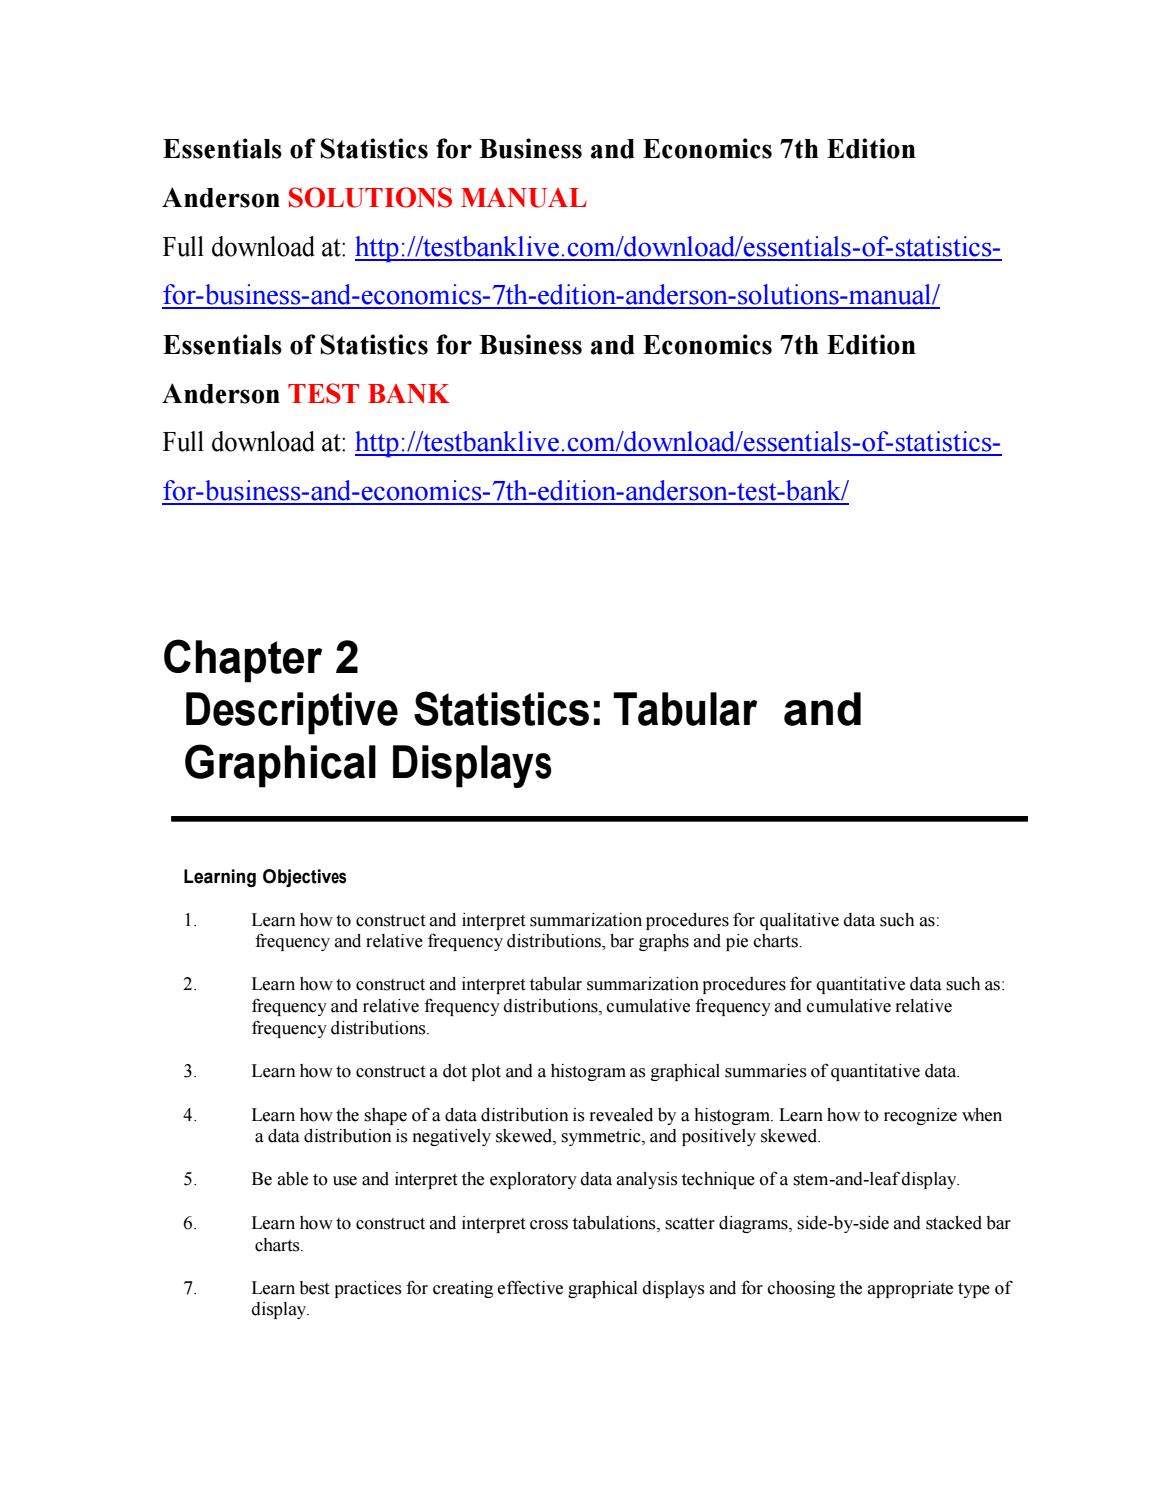 Essentials of statistics for business and economics 7th edition anderson  solutions manual by zdzd111 - issuu